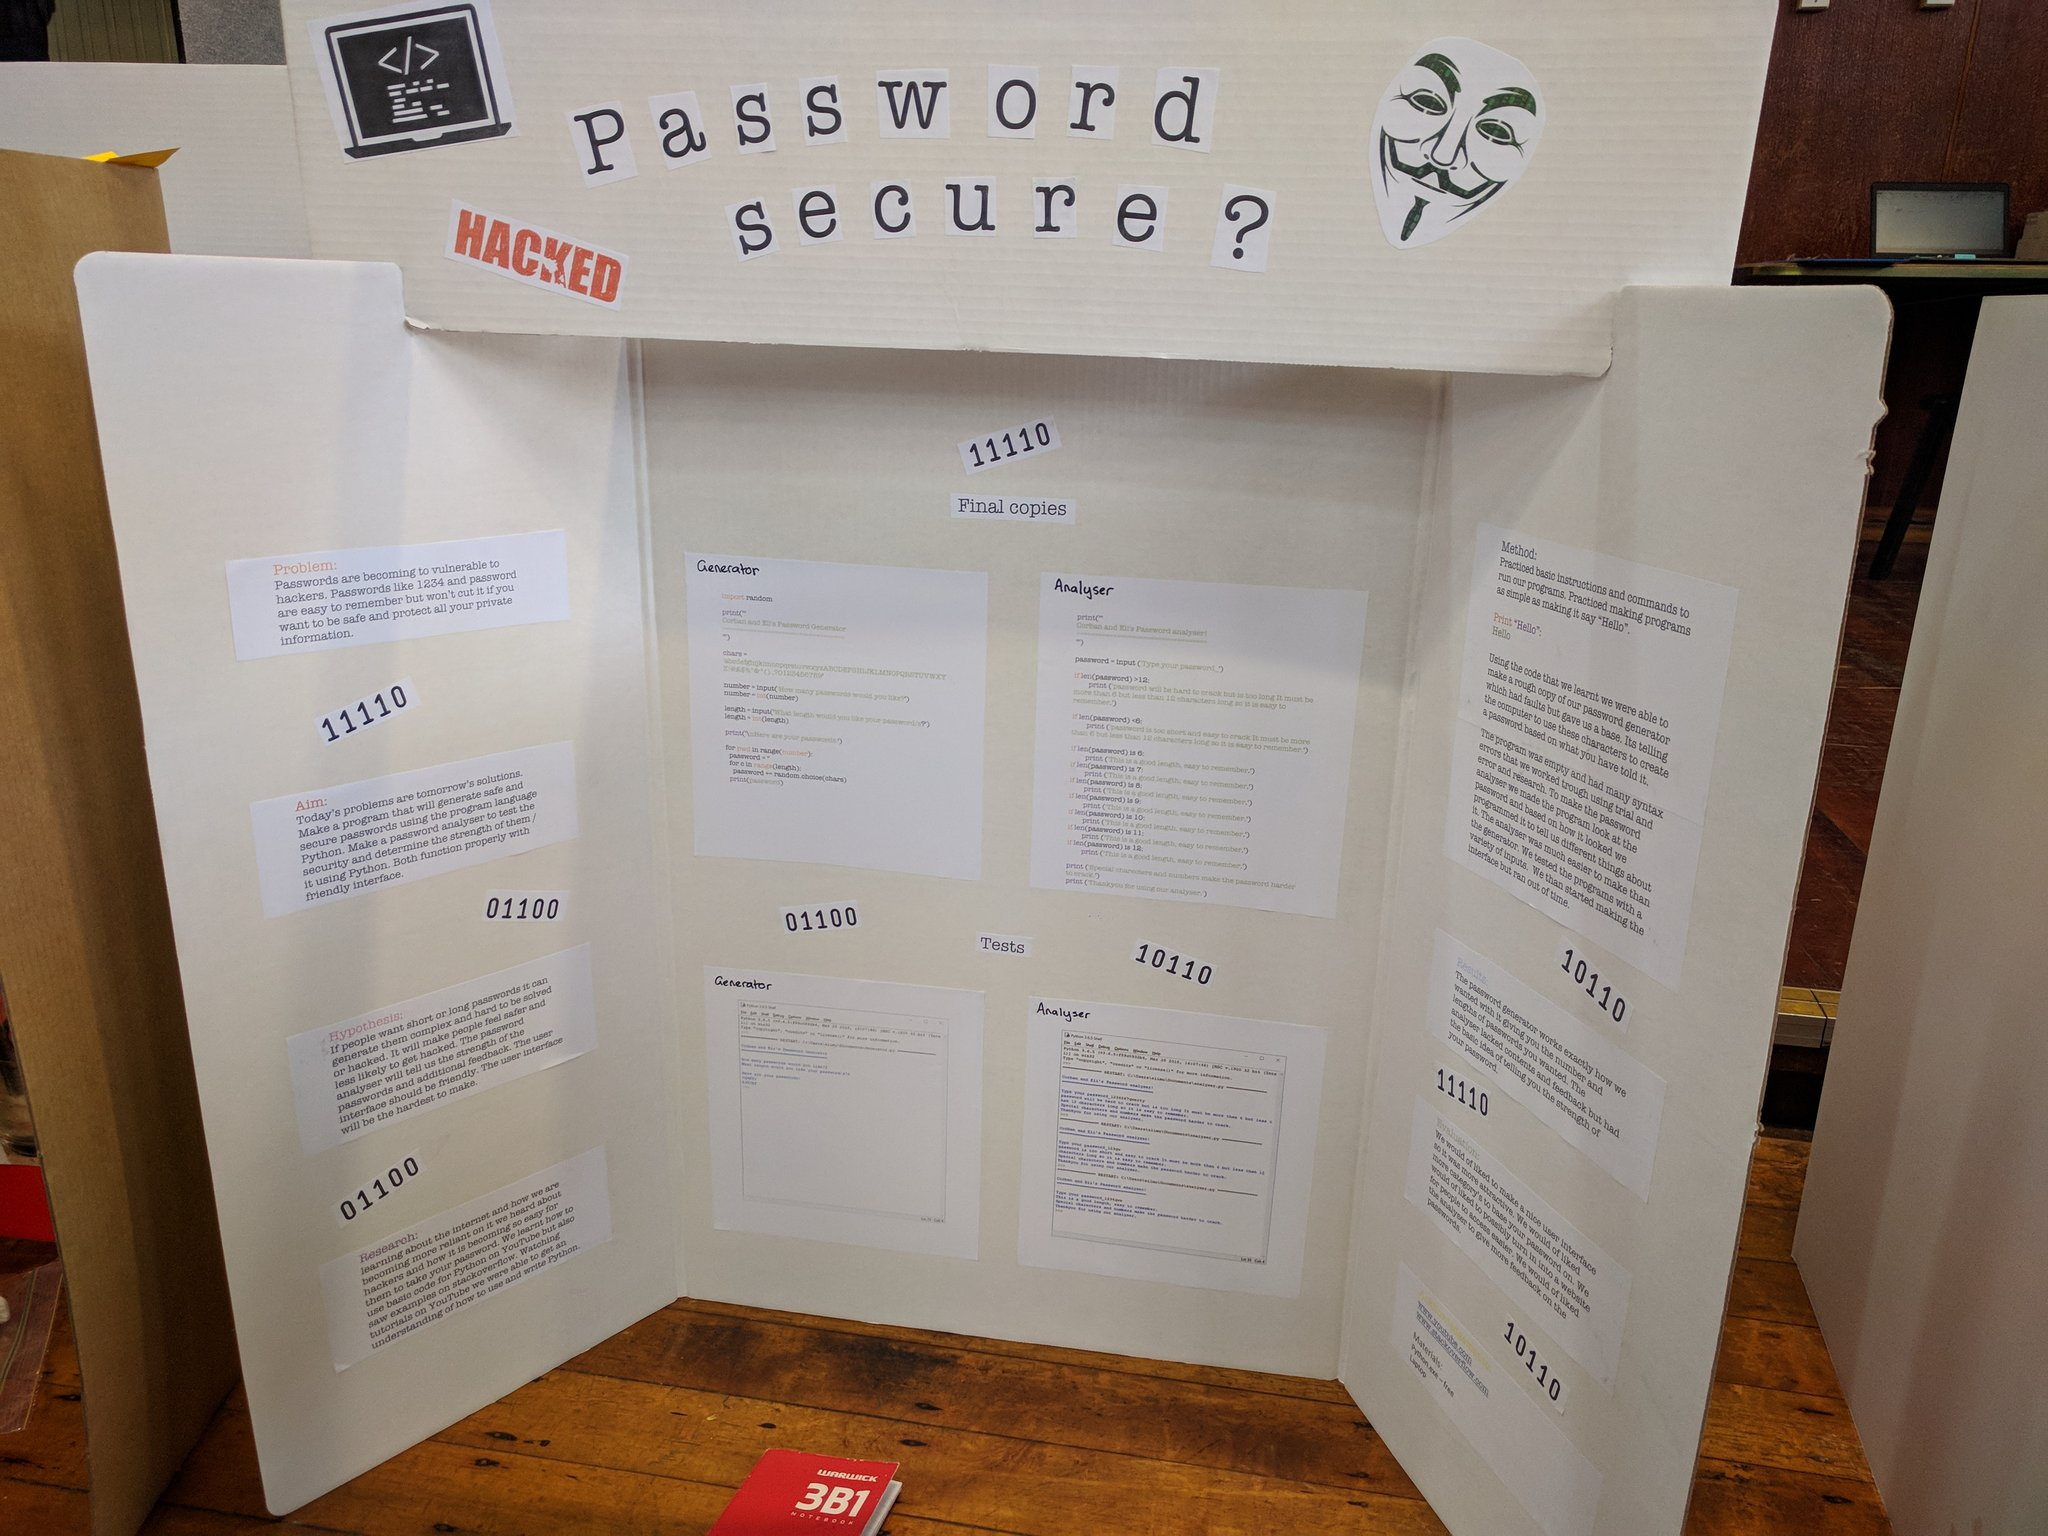 A secure password generator and analyzer and citing @StackOverflow as a source?  Oh yeah! #ScienceFair https://t.co/FLNx7LGWiA